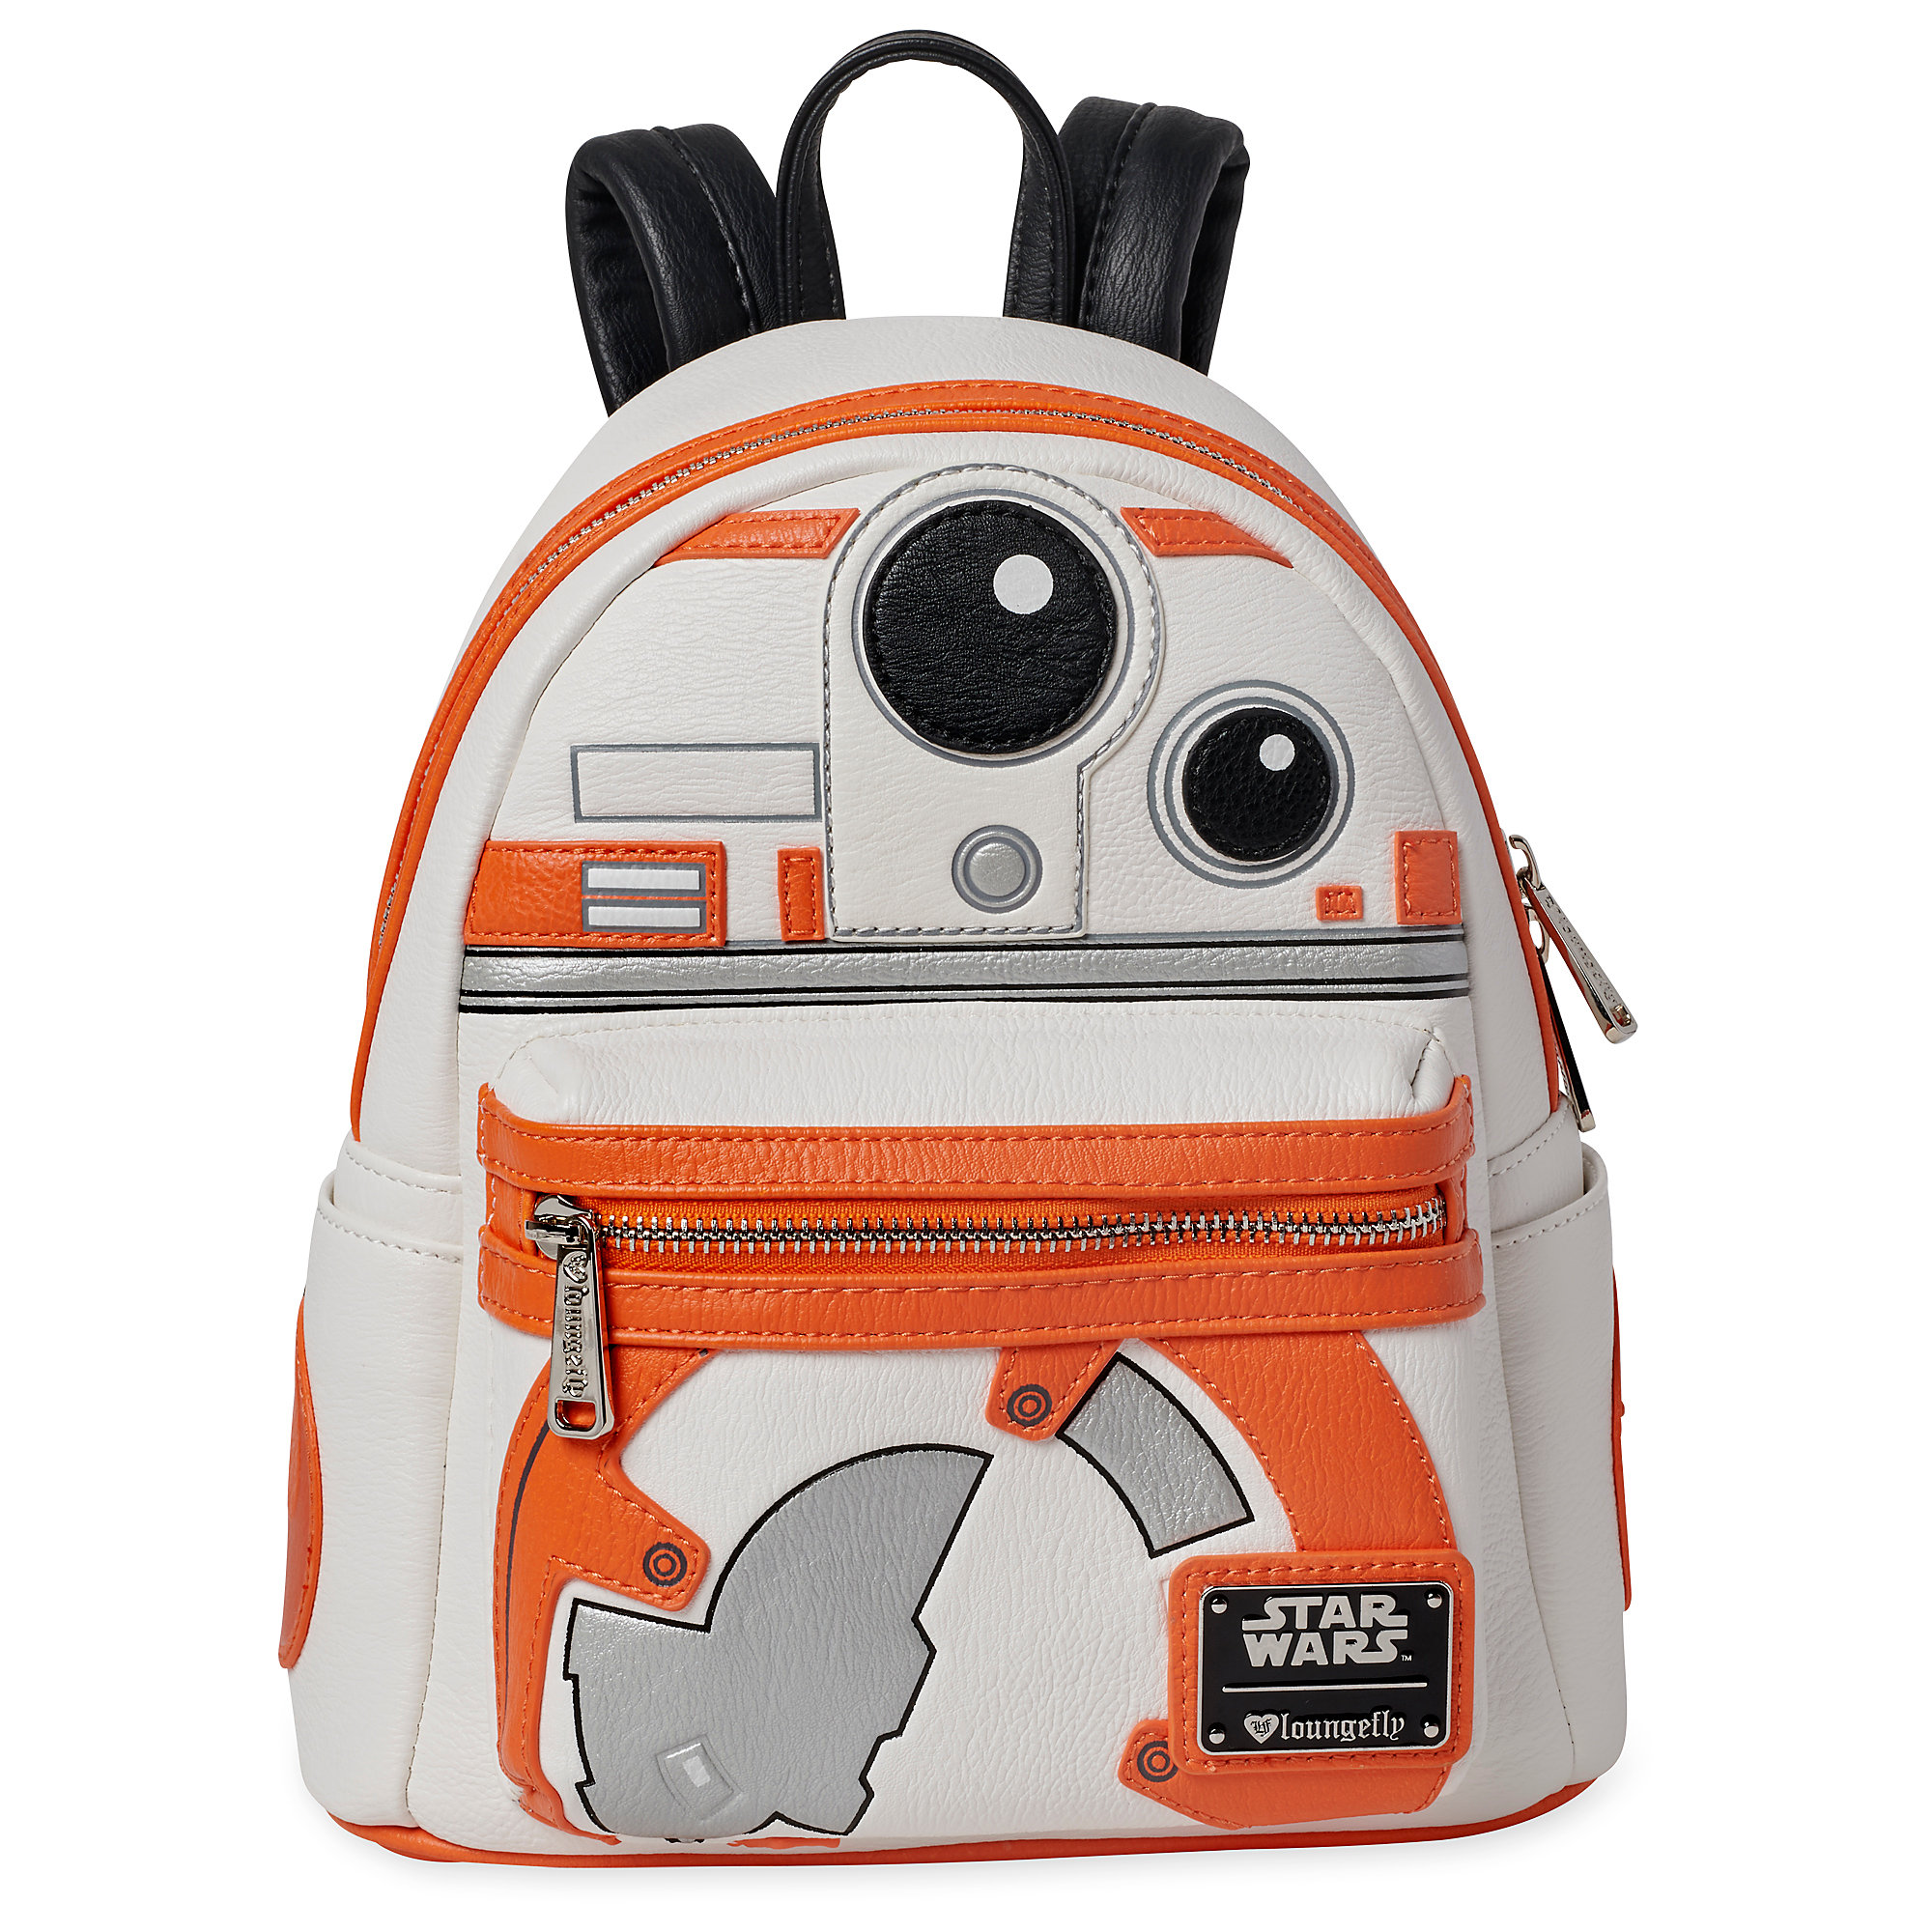 8c12e601e0 BB-8 Fashion Backpack for Adults by Loungefly - Star Wars